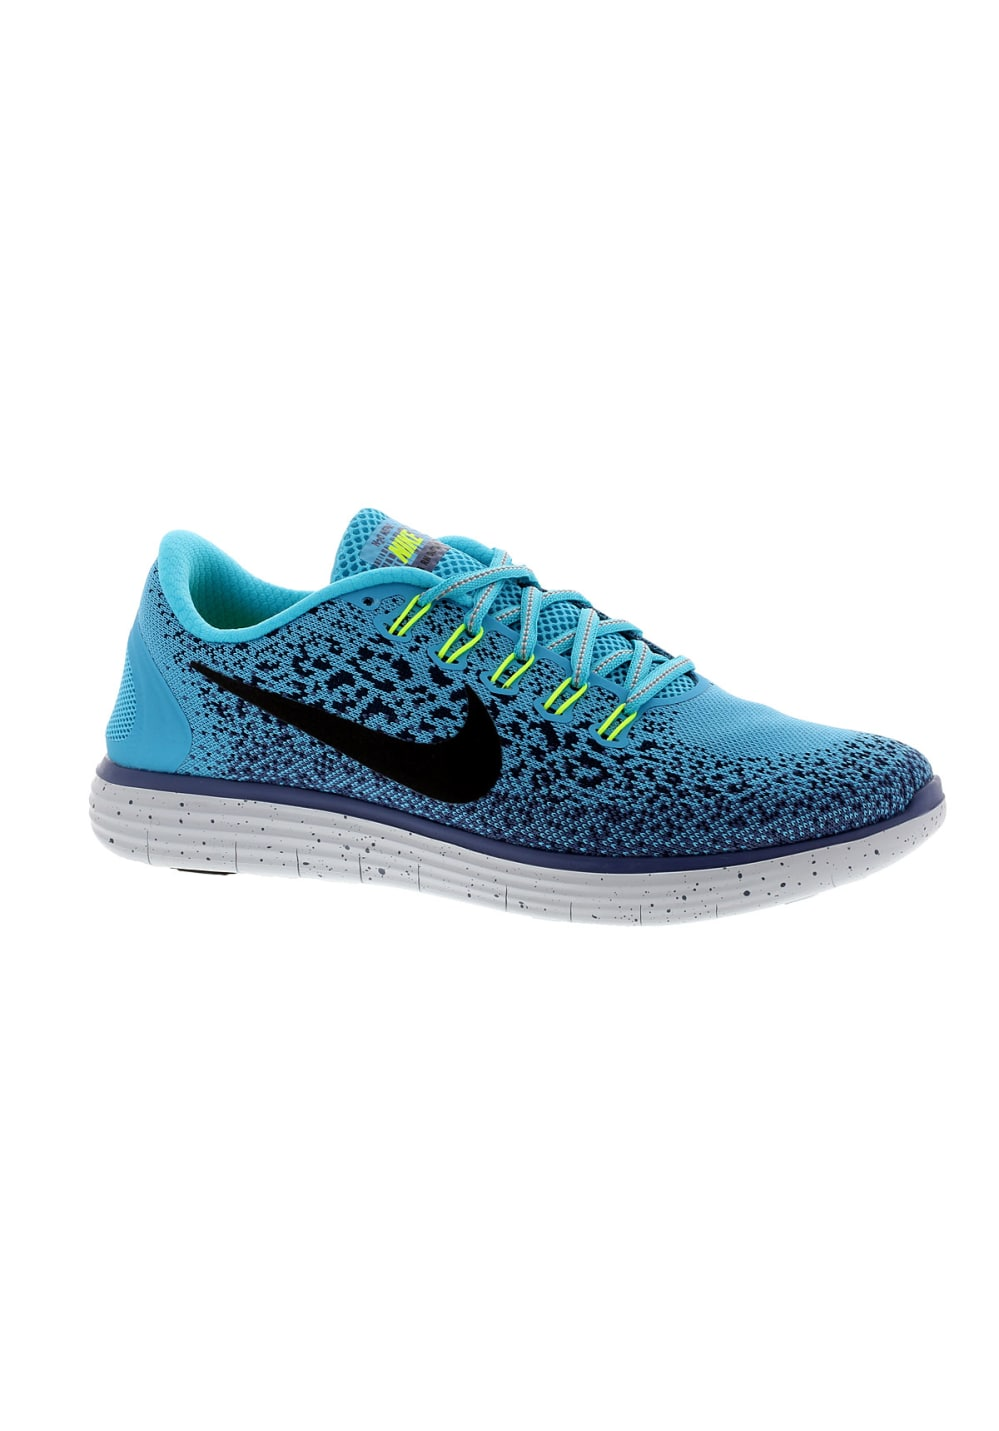 82d135e4e17d4 Nike Free RN Distance Shield - Running shoes for Women - Blue